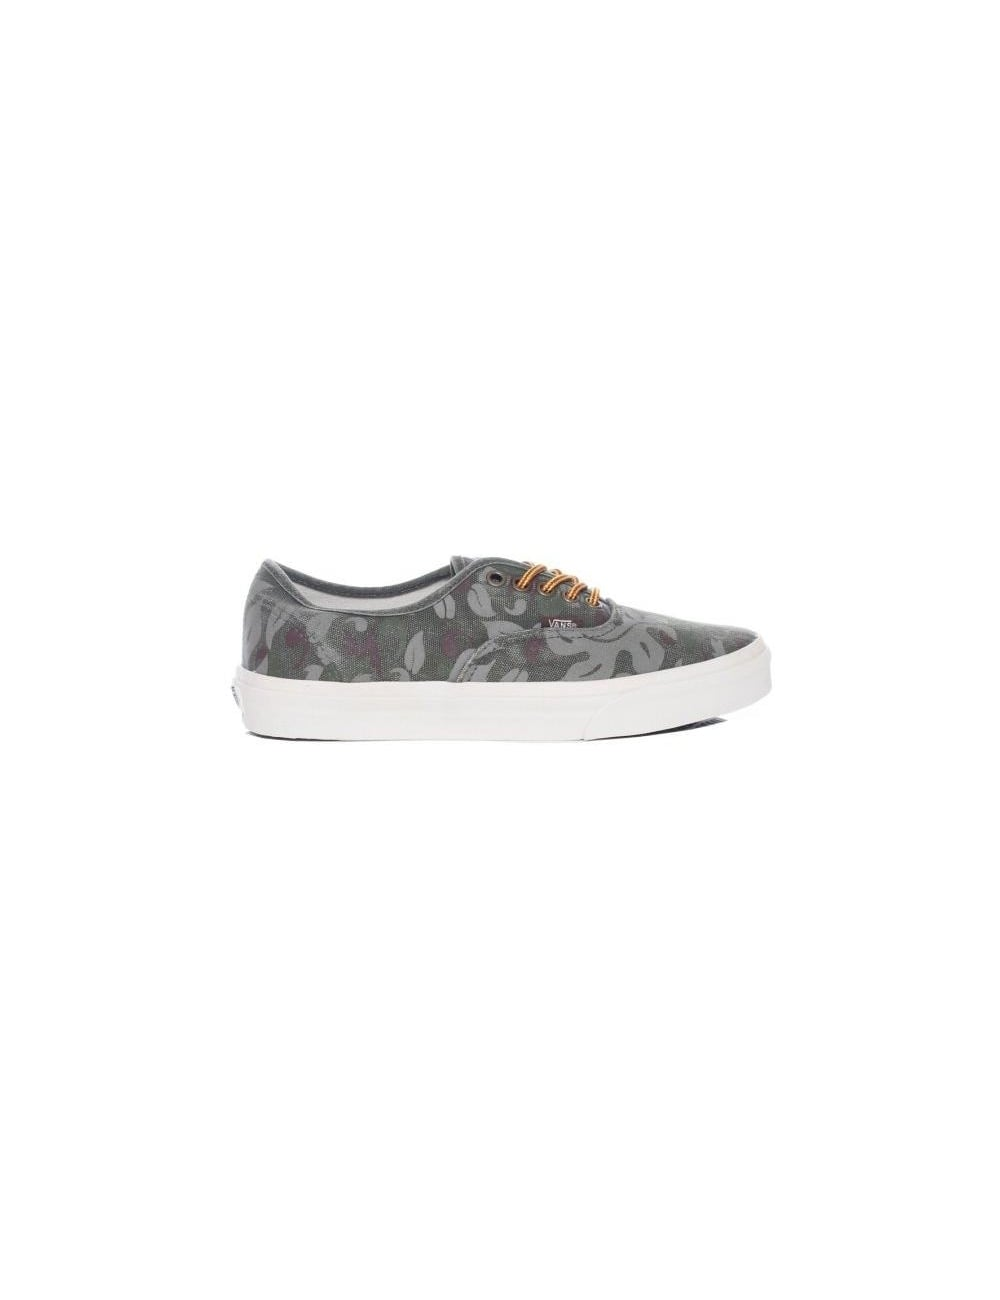 b0b07aa83a0 Vans California Authentic CA - Floral Camo - Footwear from Fat ...